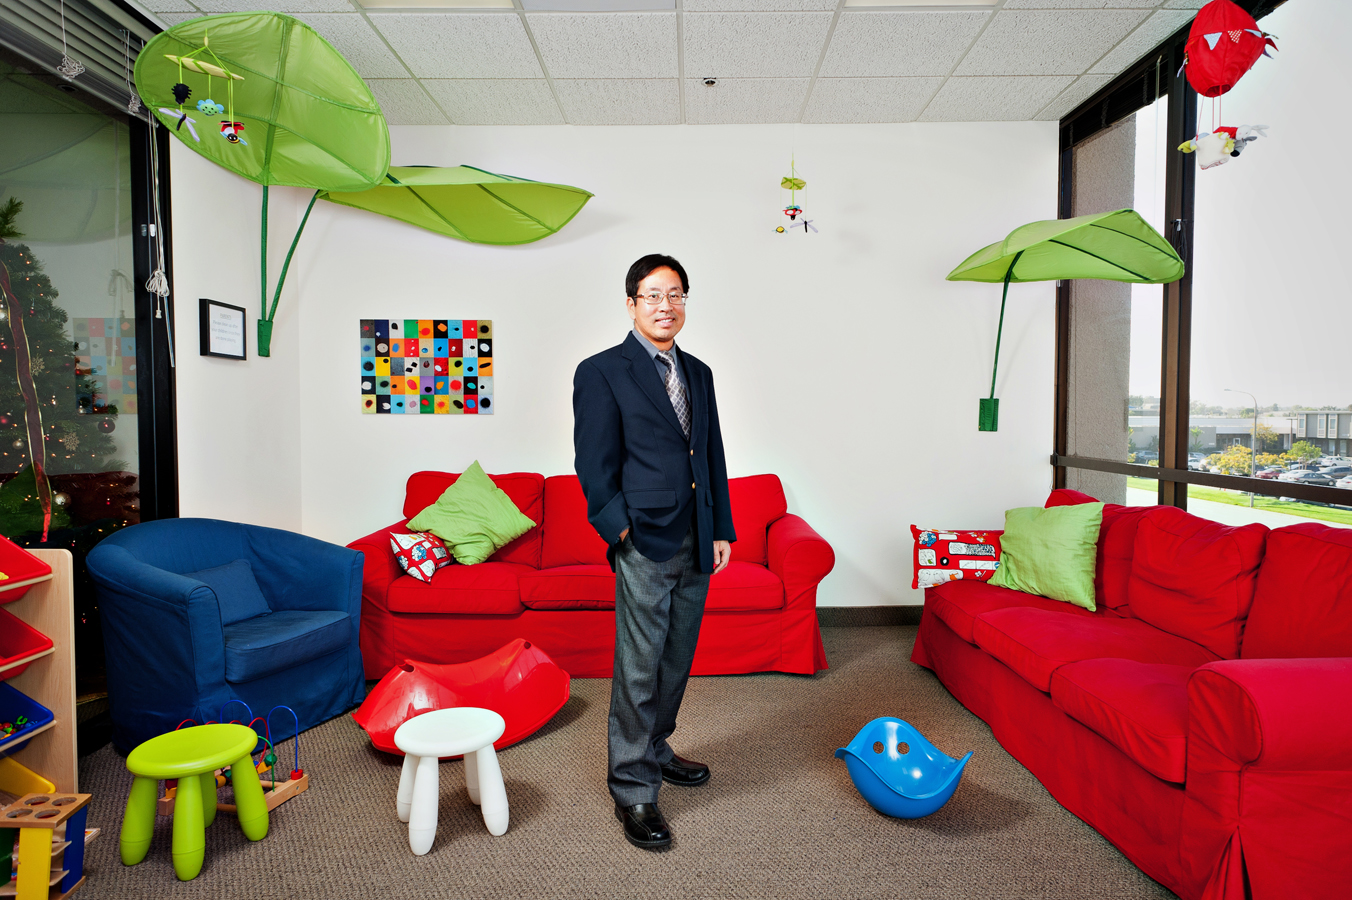 Asian Pediatric Doctor poses in suit and tie in waiting room of his practice.  Kenneth M. Ruggiano Tulsa Oklahoma based Photographer